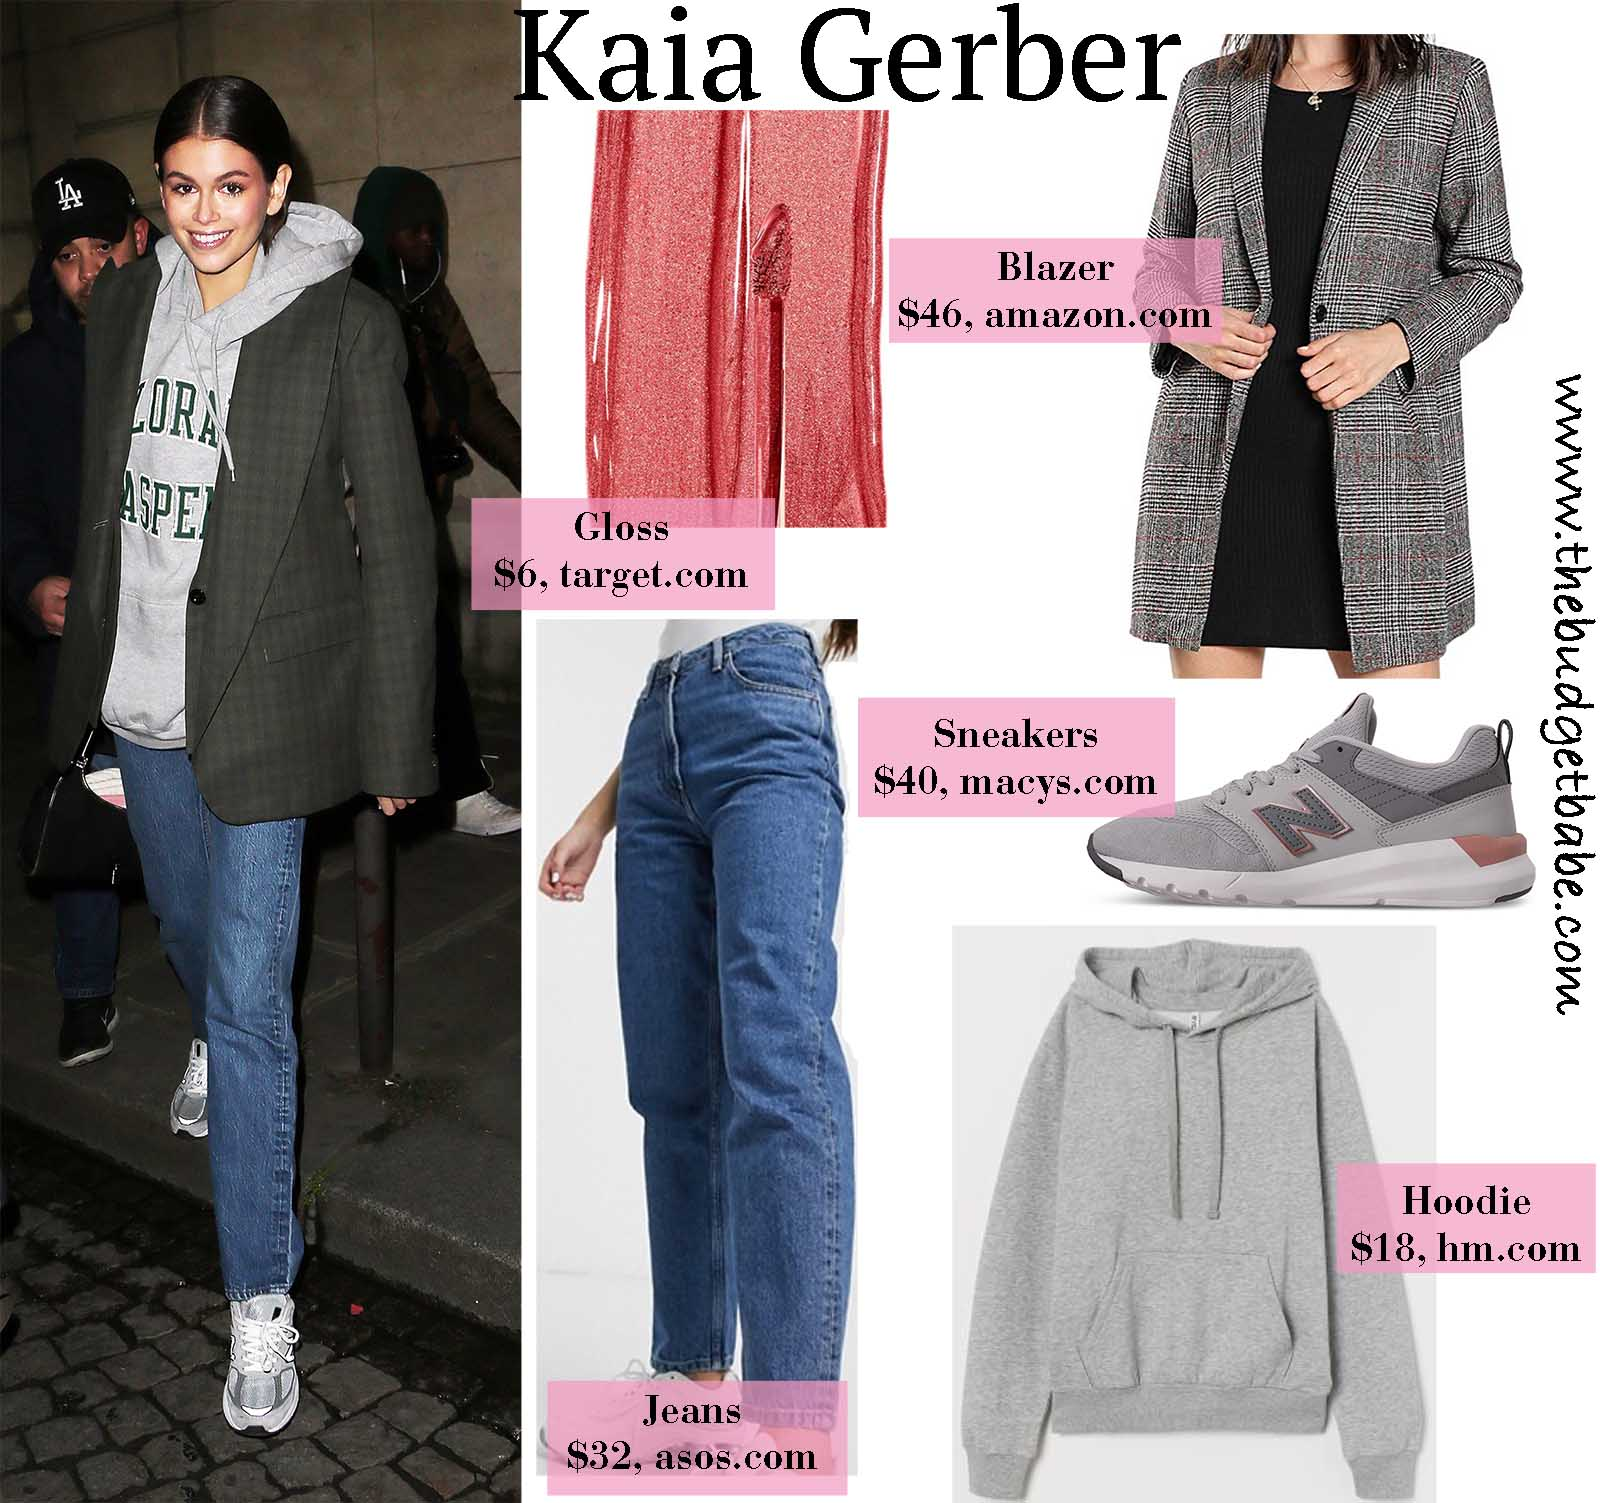 Kaia Gerber gives uss casual-chic  in menswear!